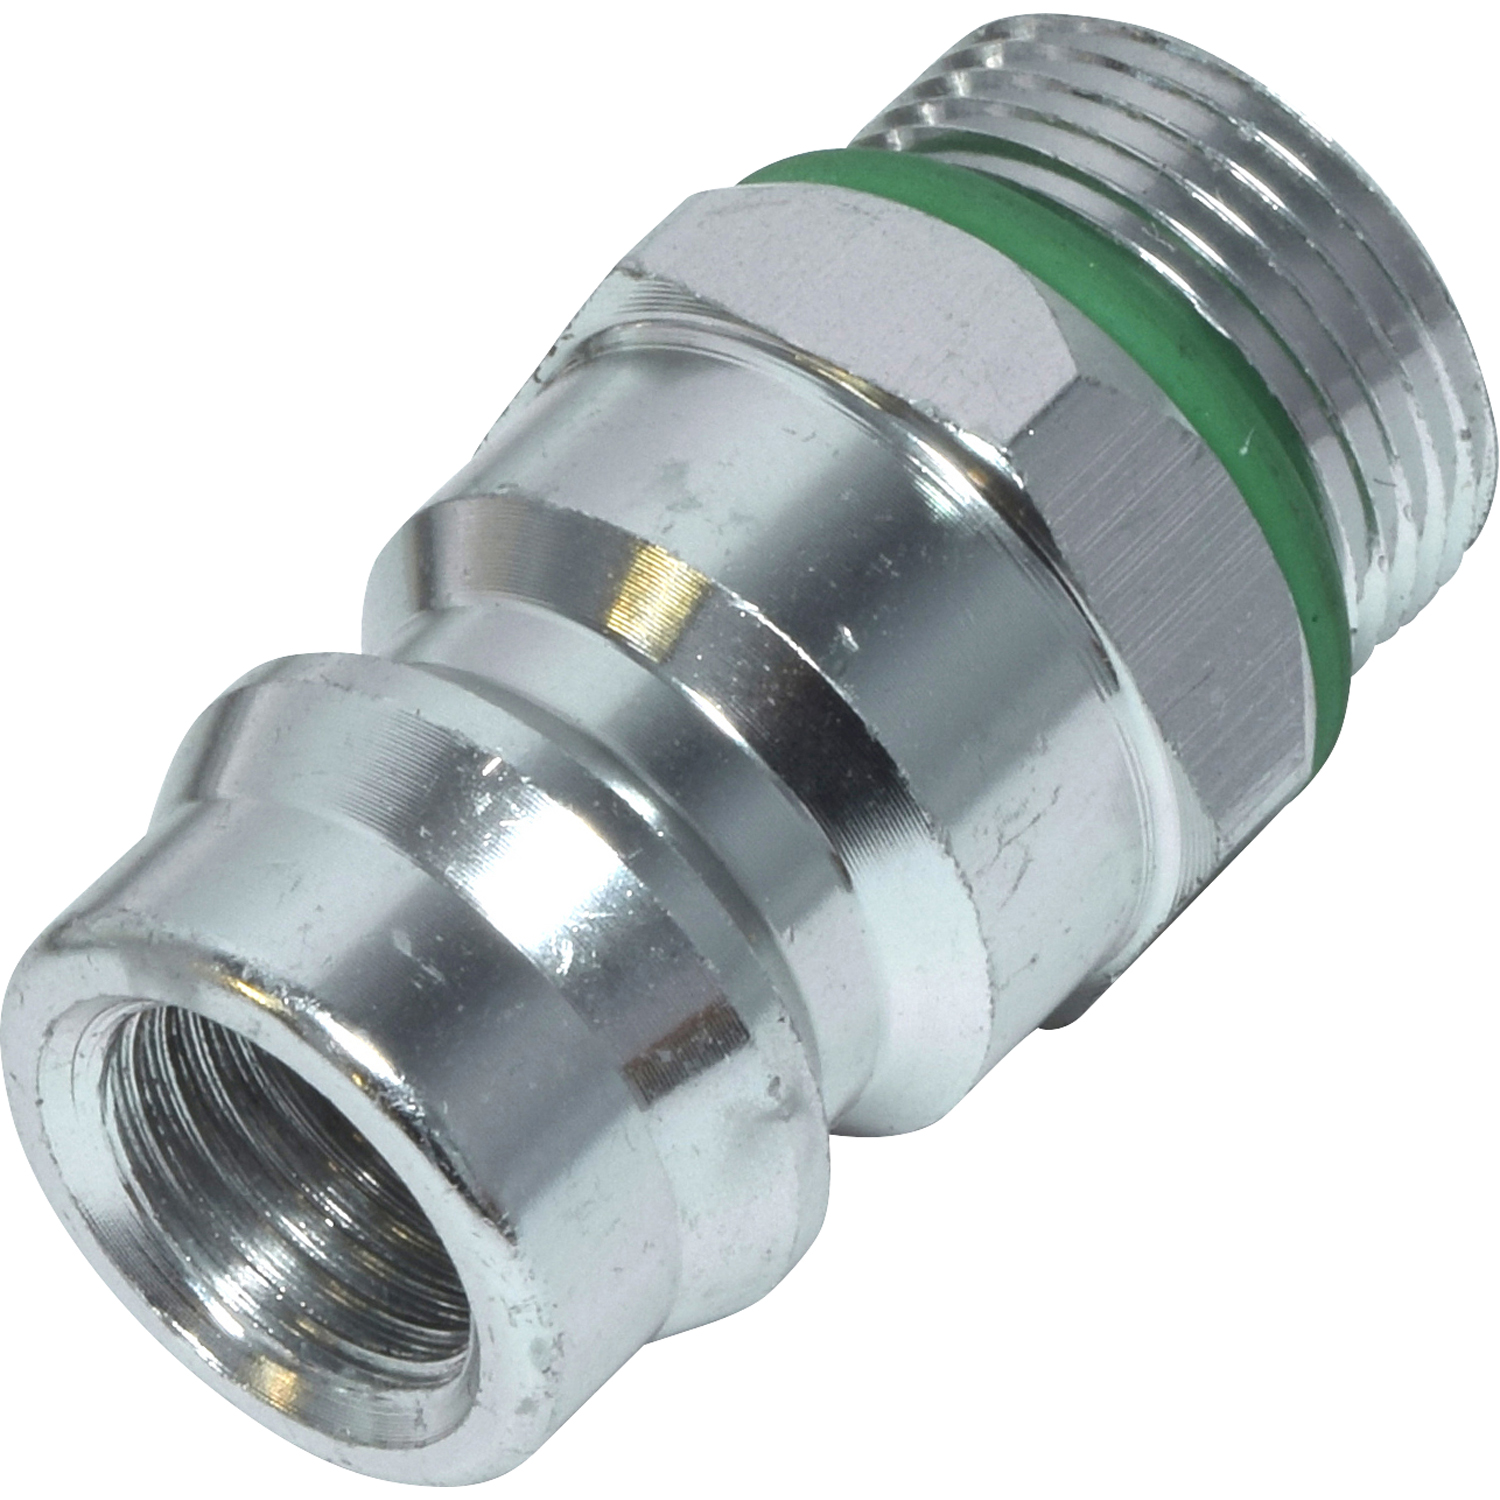 Cap GM HIGH SIDE STEEL HIGH FLOW FITTING